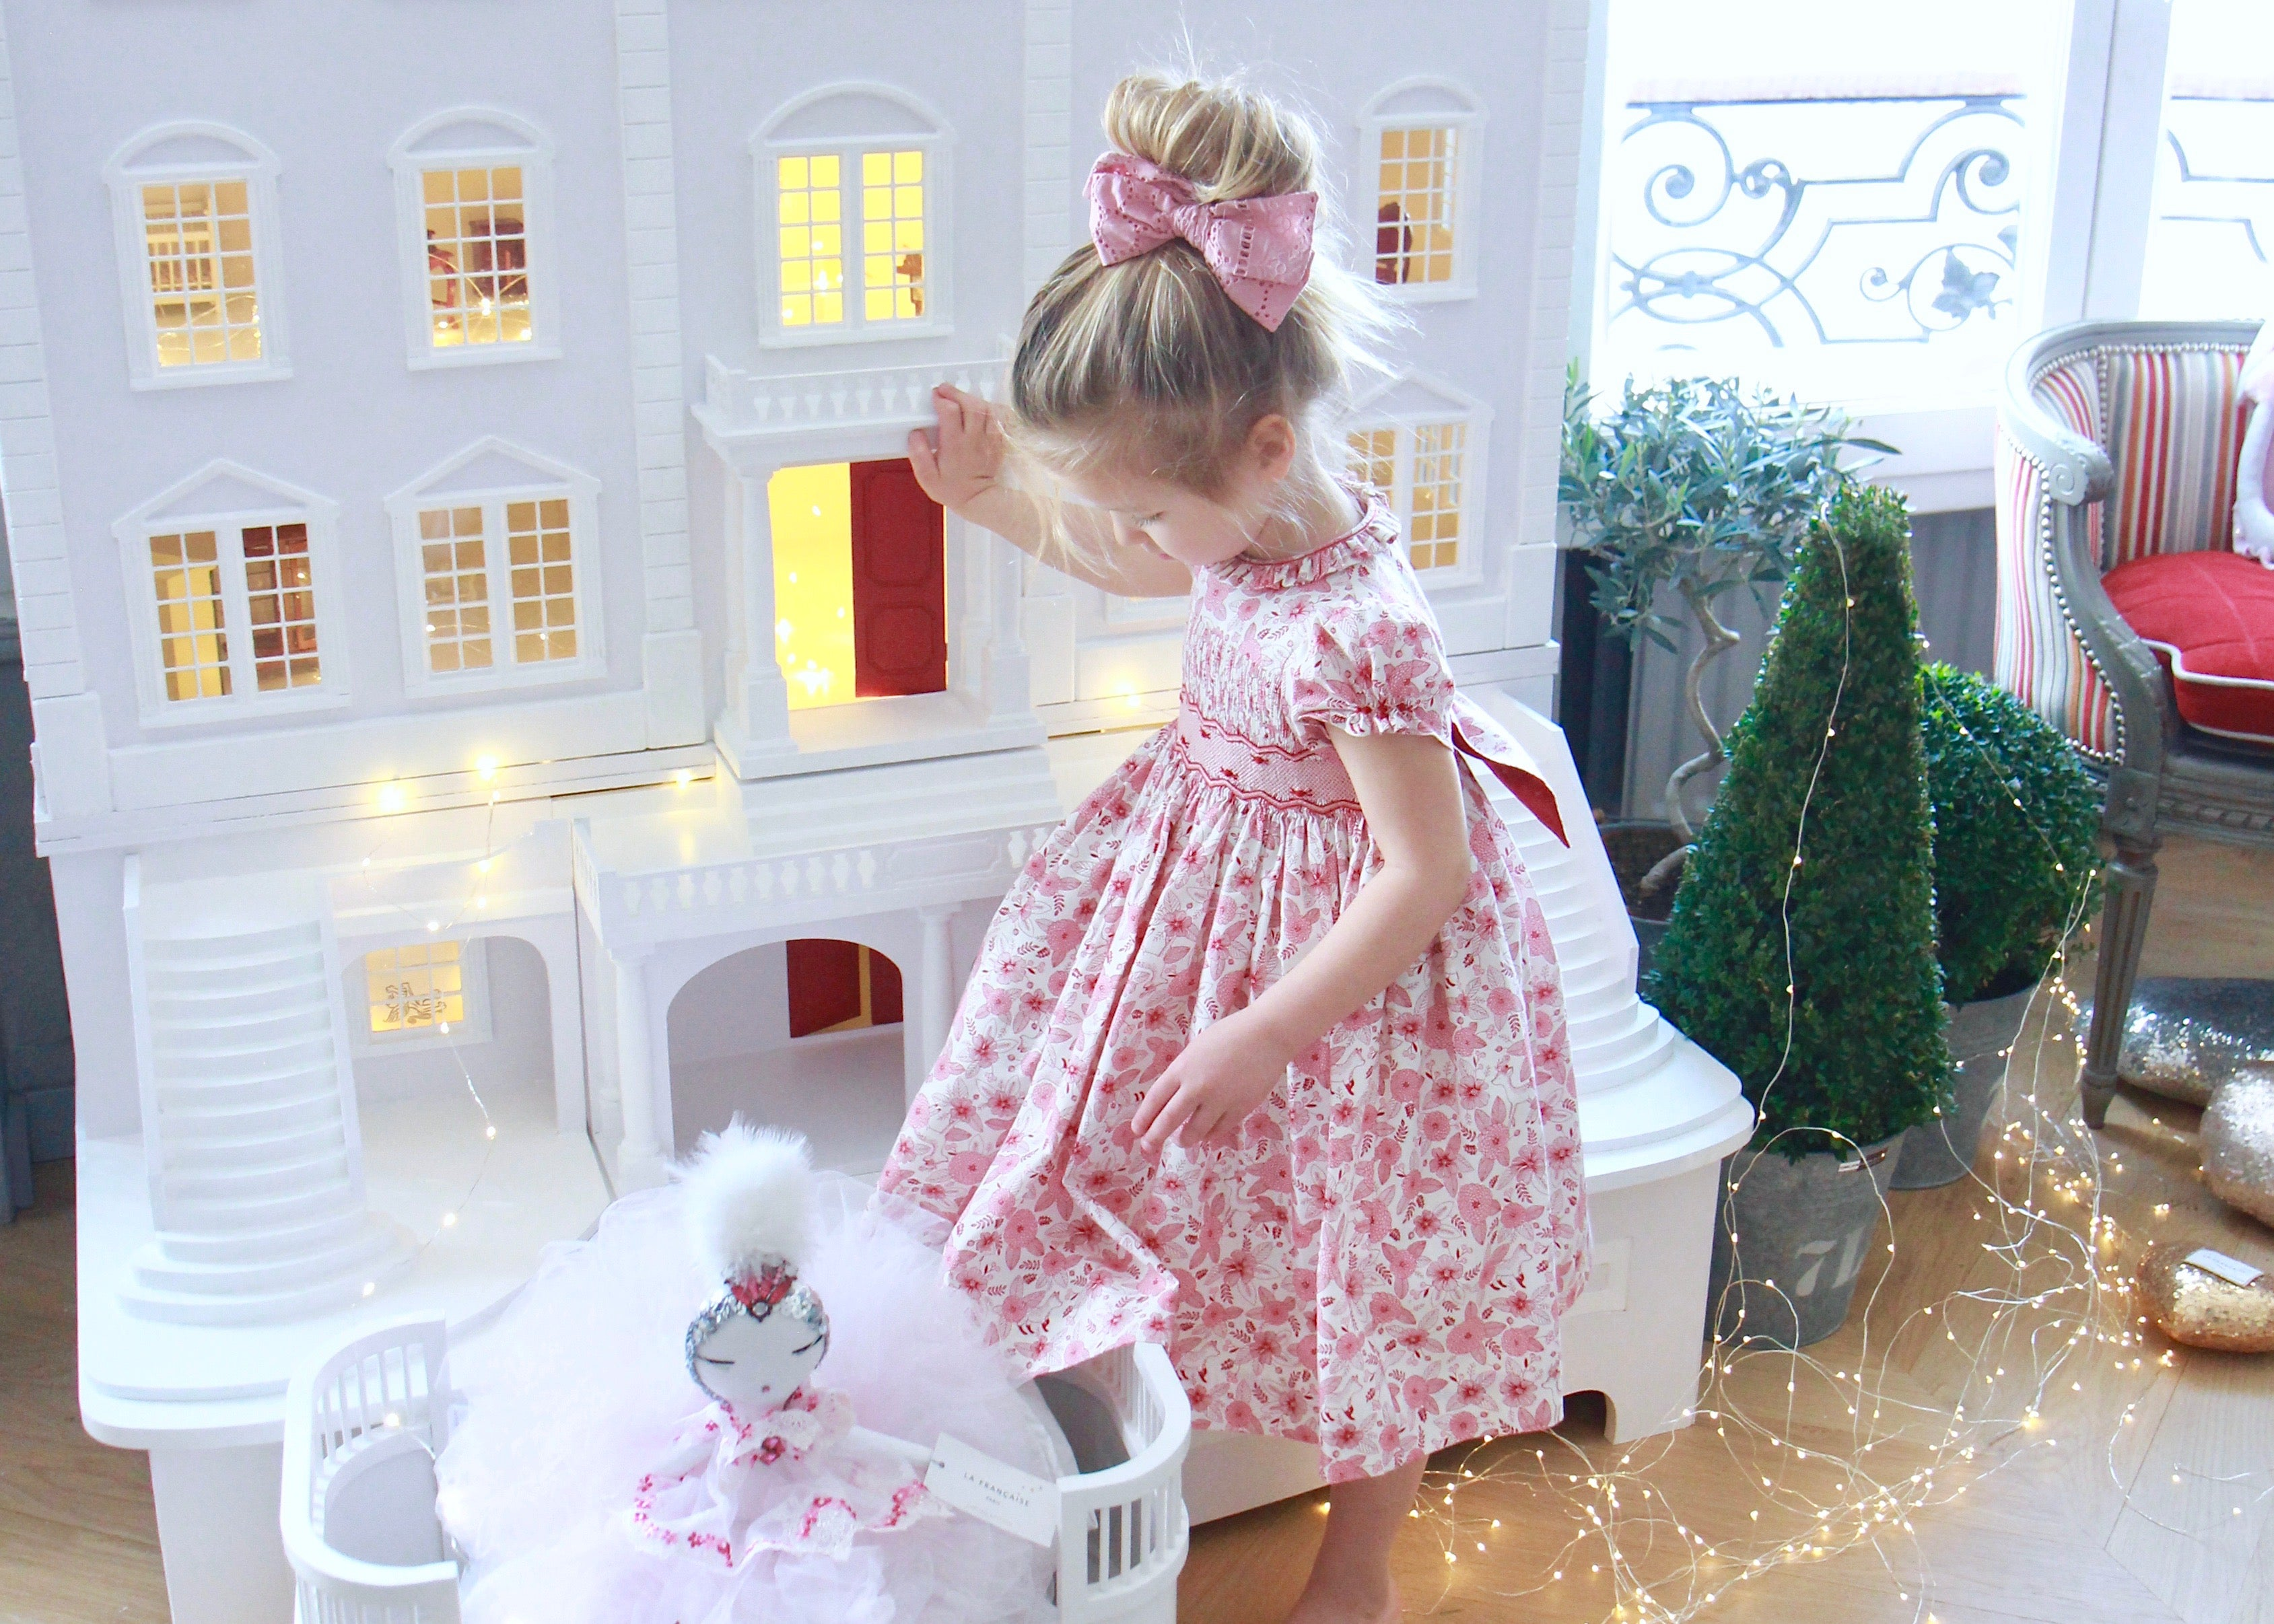 Children's traditional dollhouse